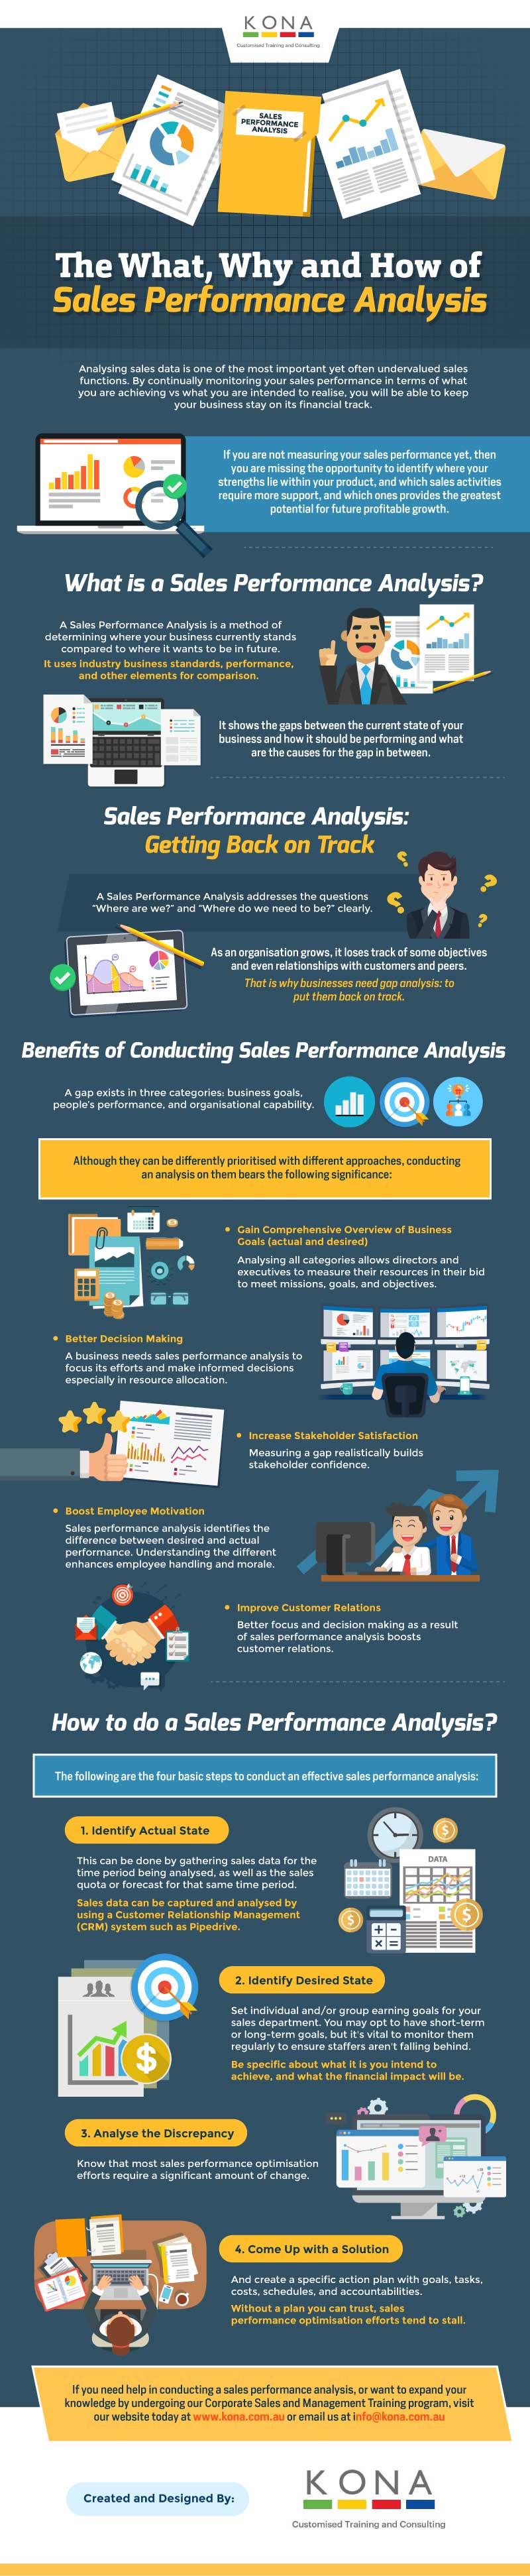 The What, Why and How of Sales Performance Analysis